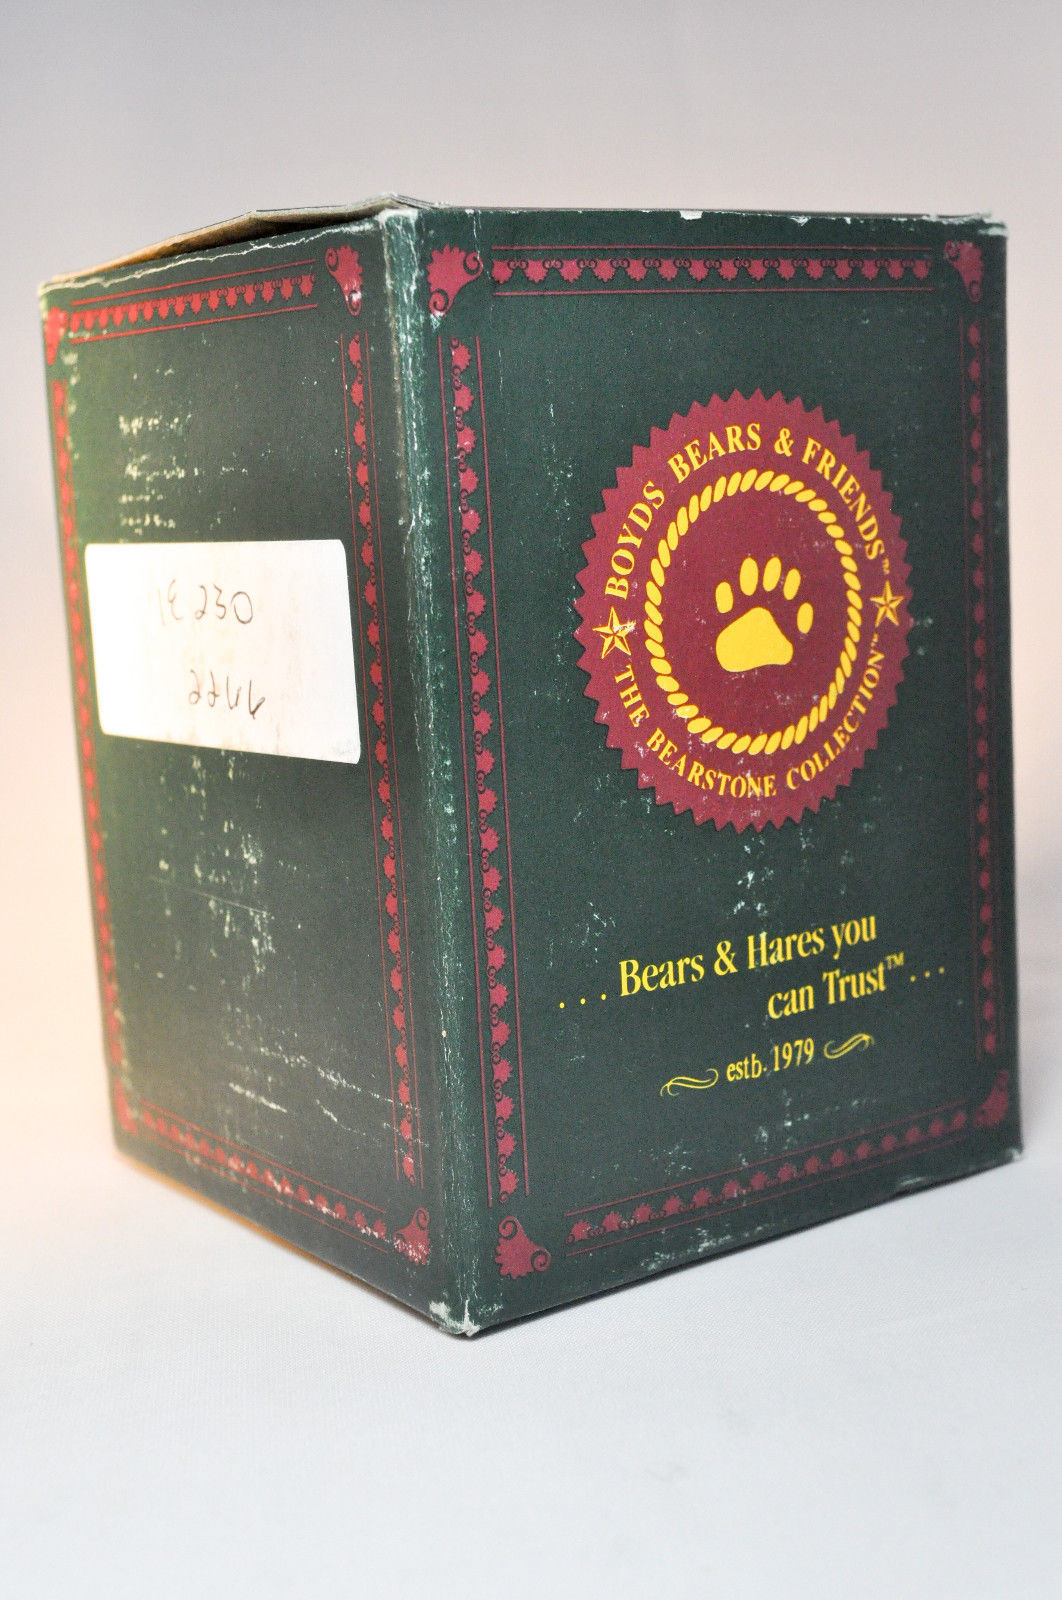 Boyds Bears: Angelica The Guardian - Style 2266 - First Edition 1E/230 - Trinket image 12